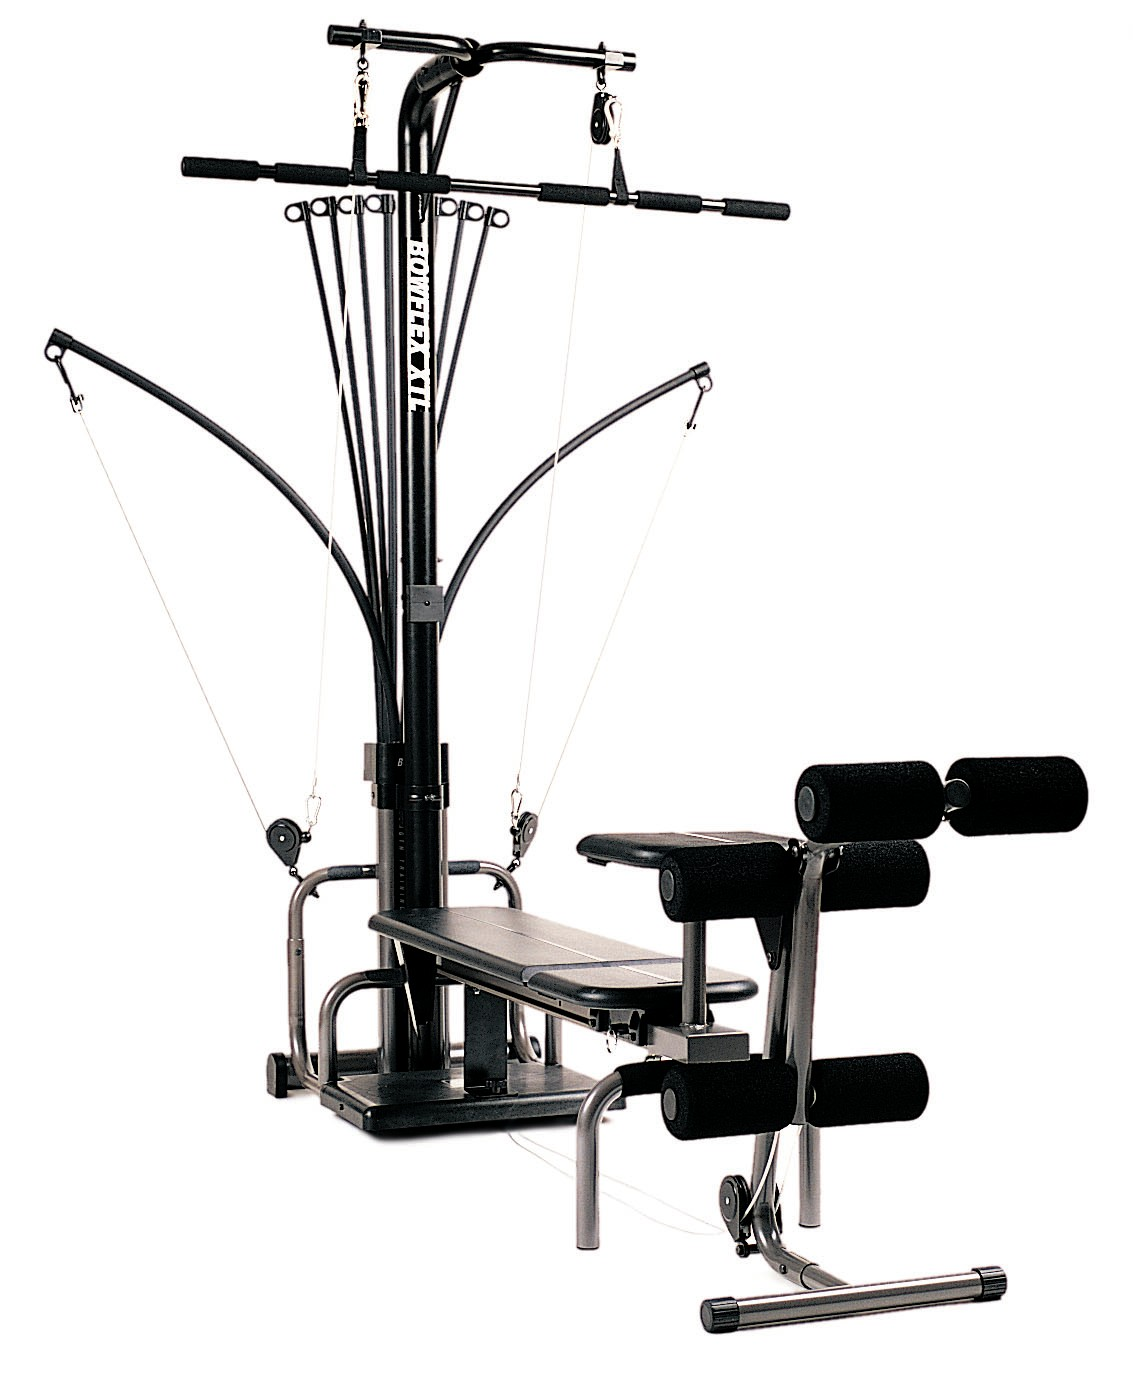 Picture of Recalled Fitness Machine